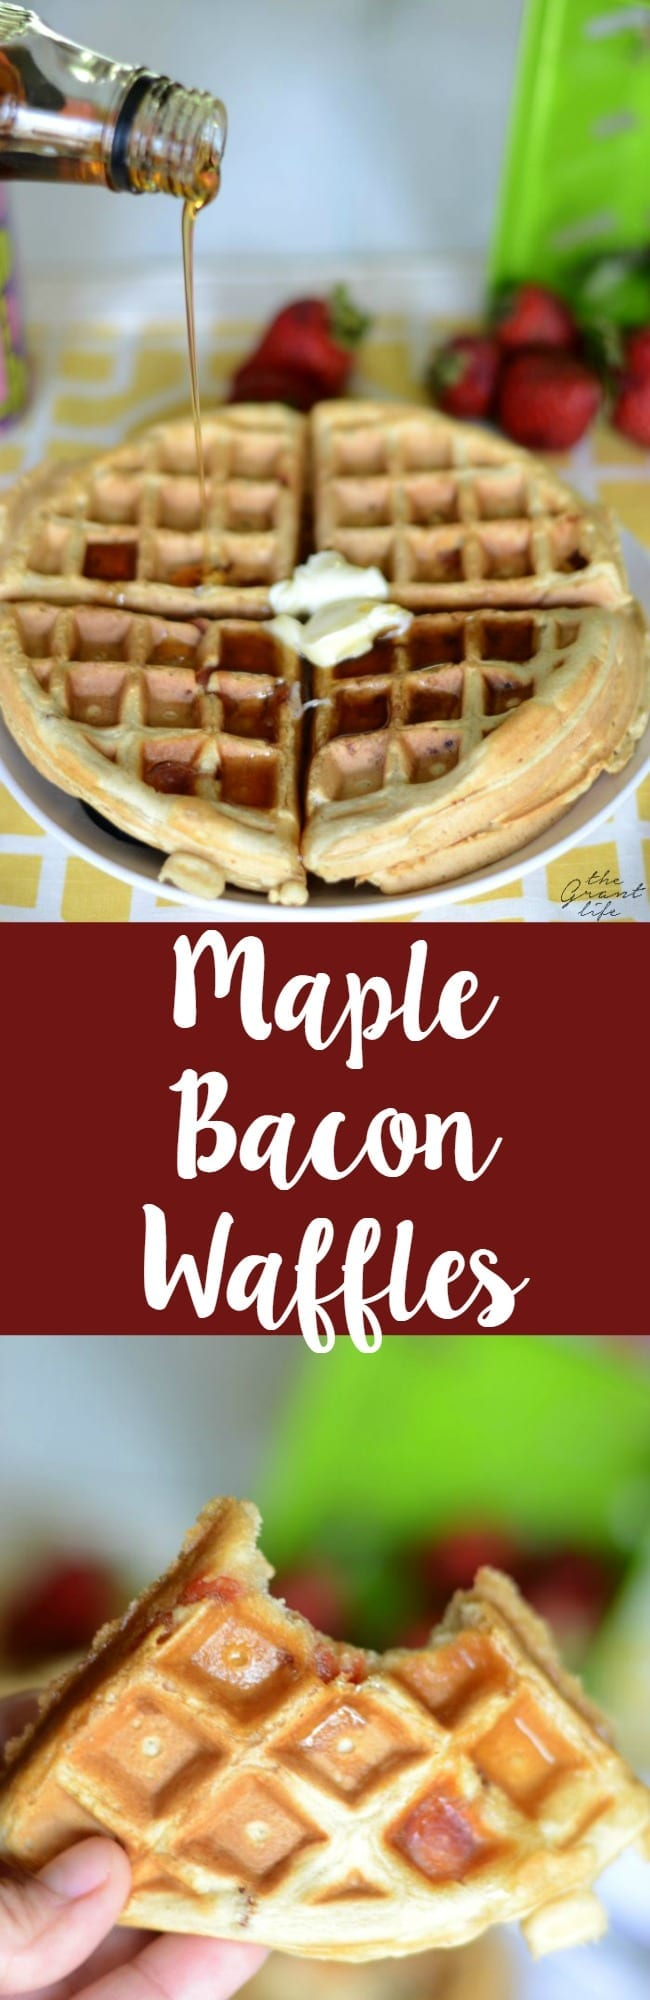 Homemade maple bacon waffles